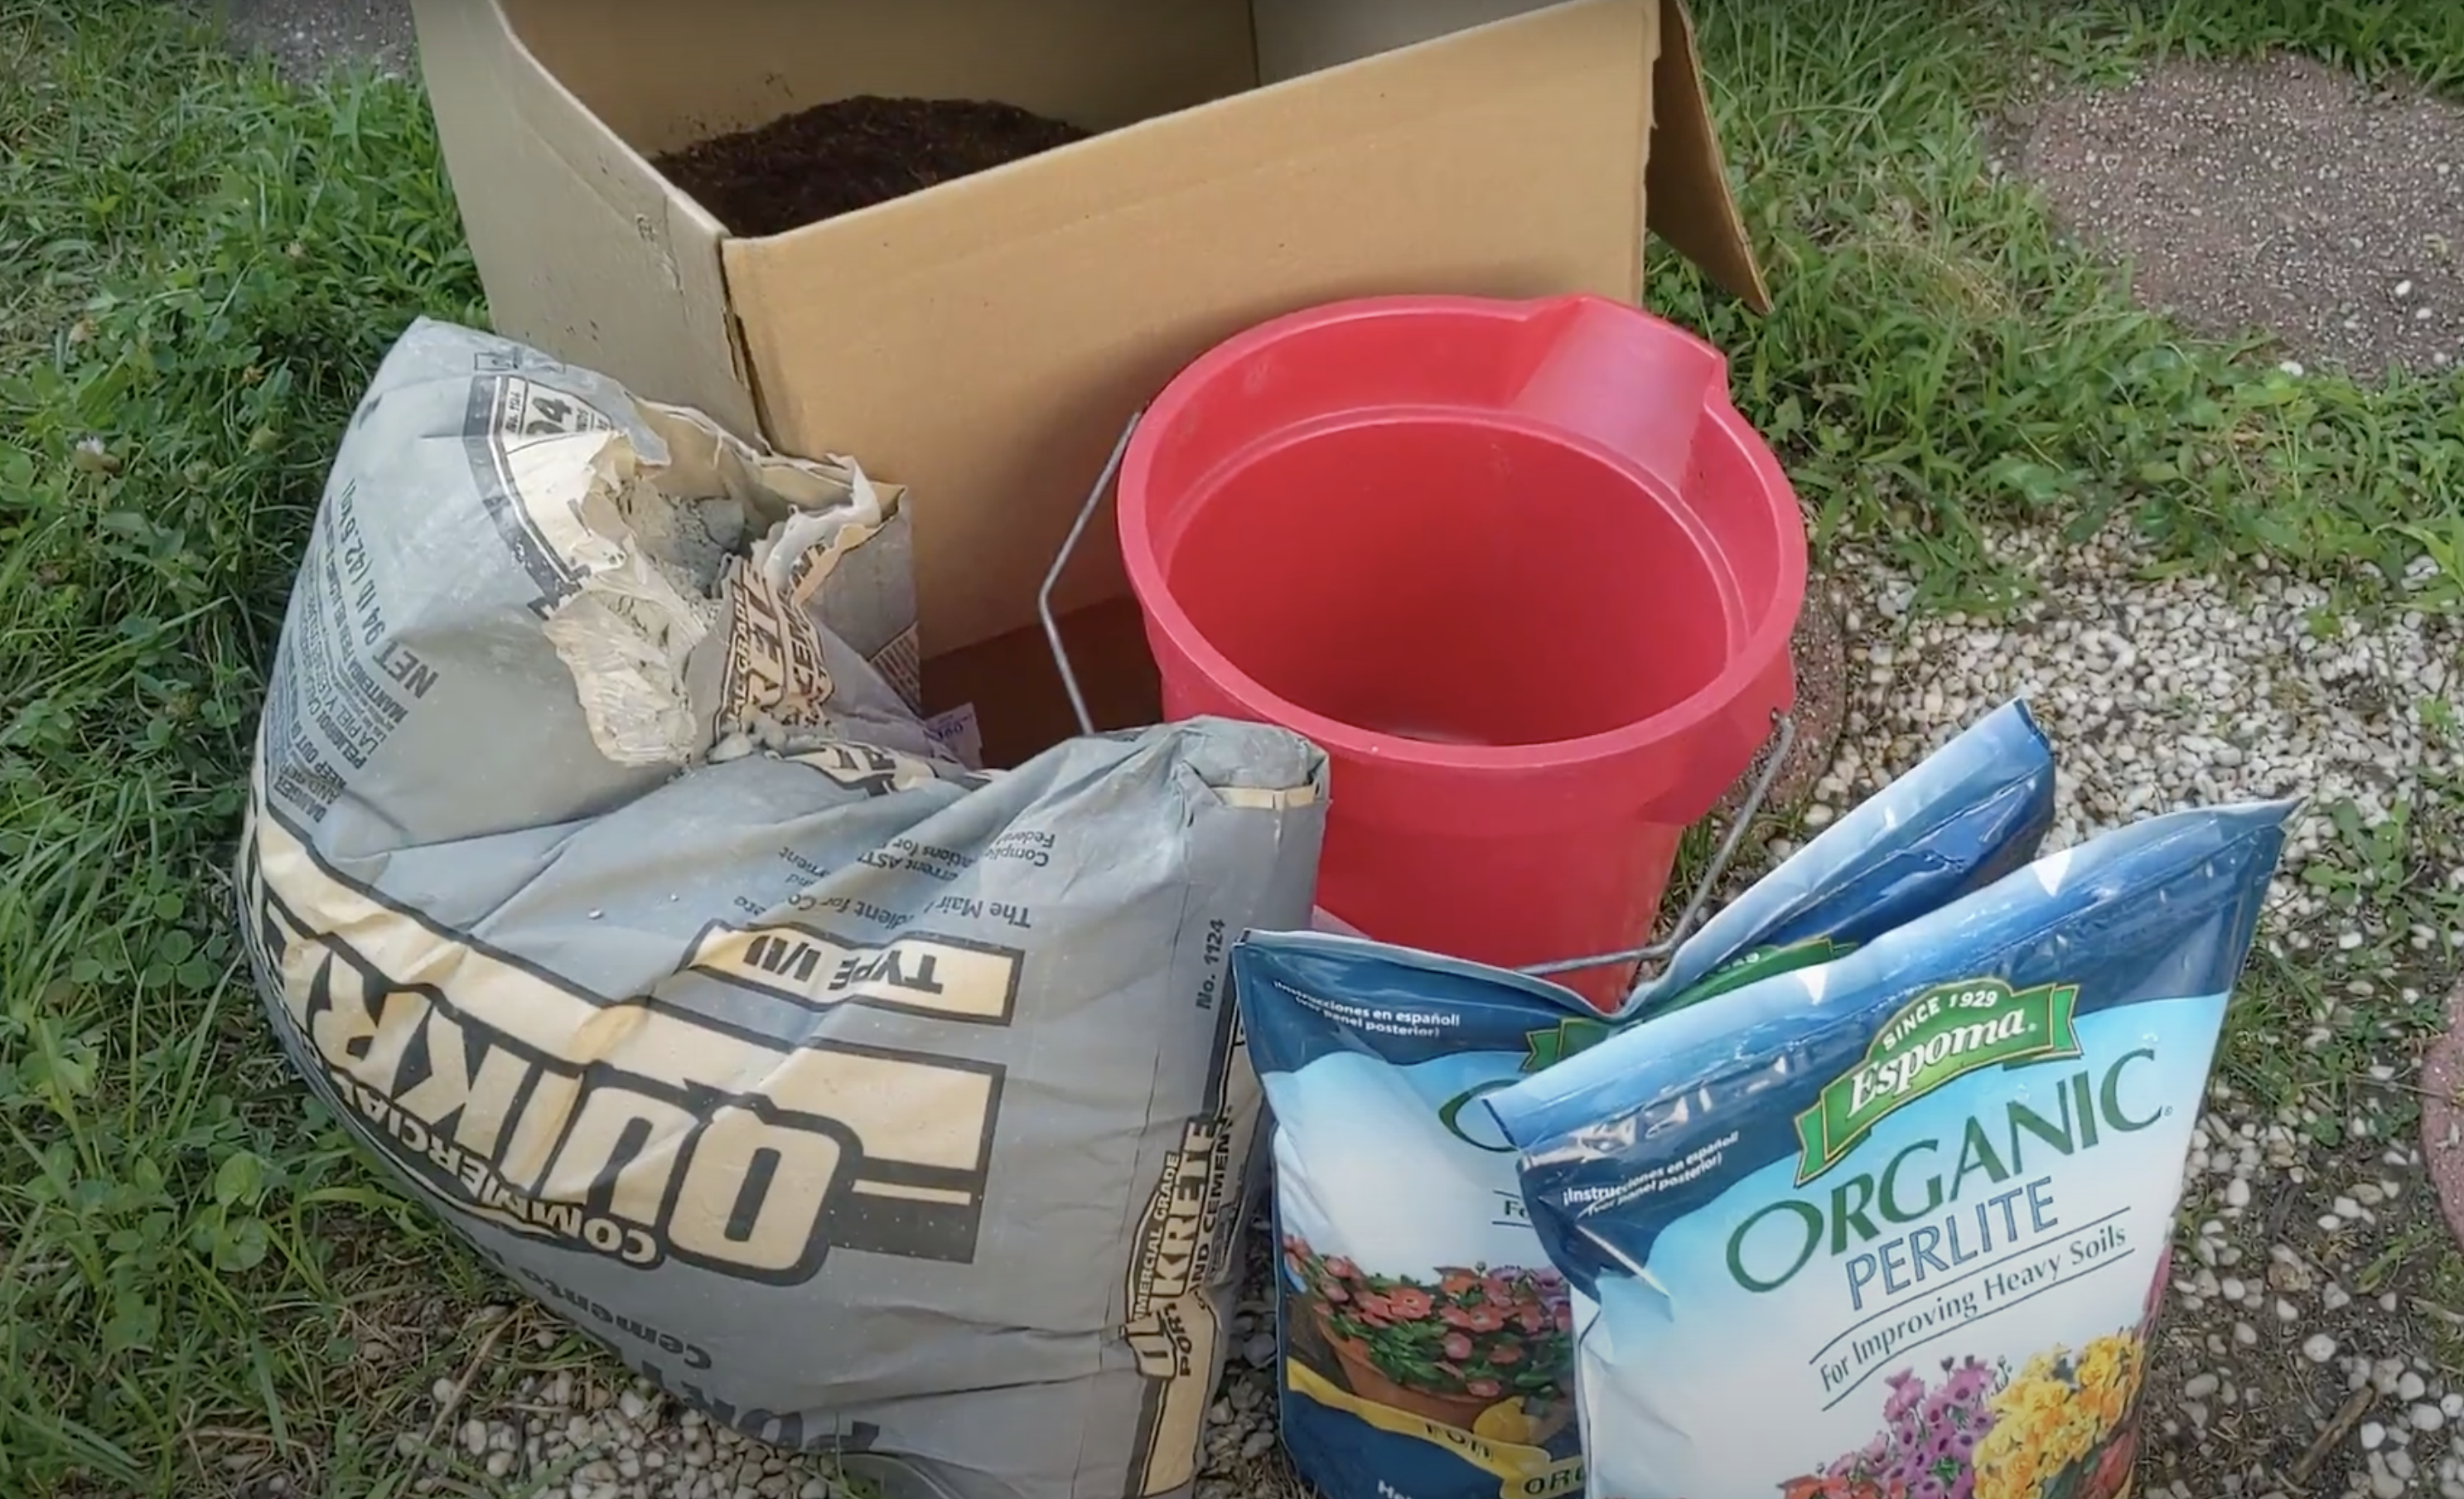 perlite, bag of portland cement, bucket, and coconut coir in a cardboard box